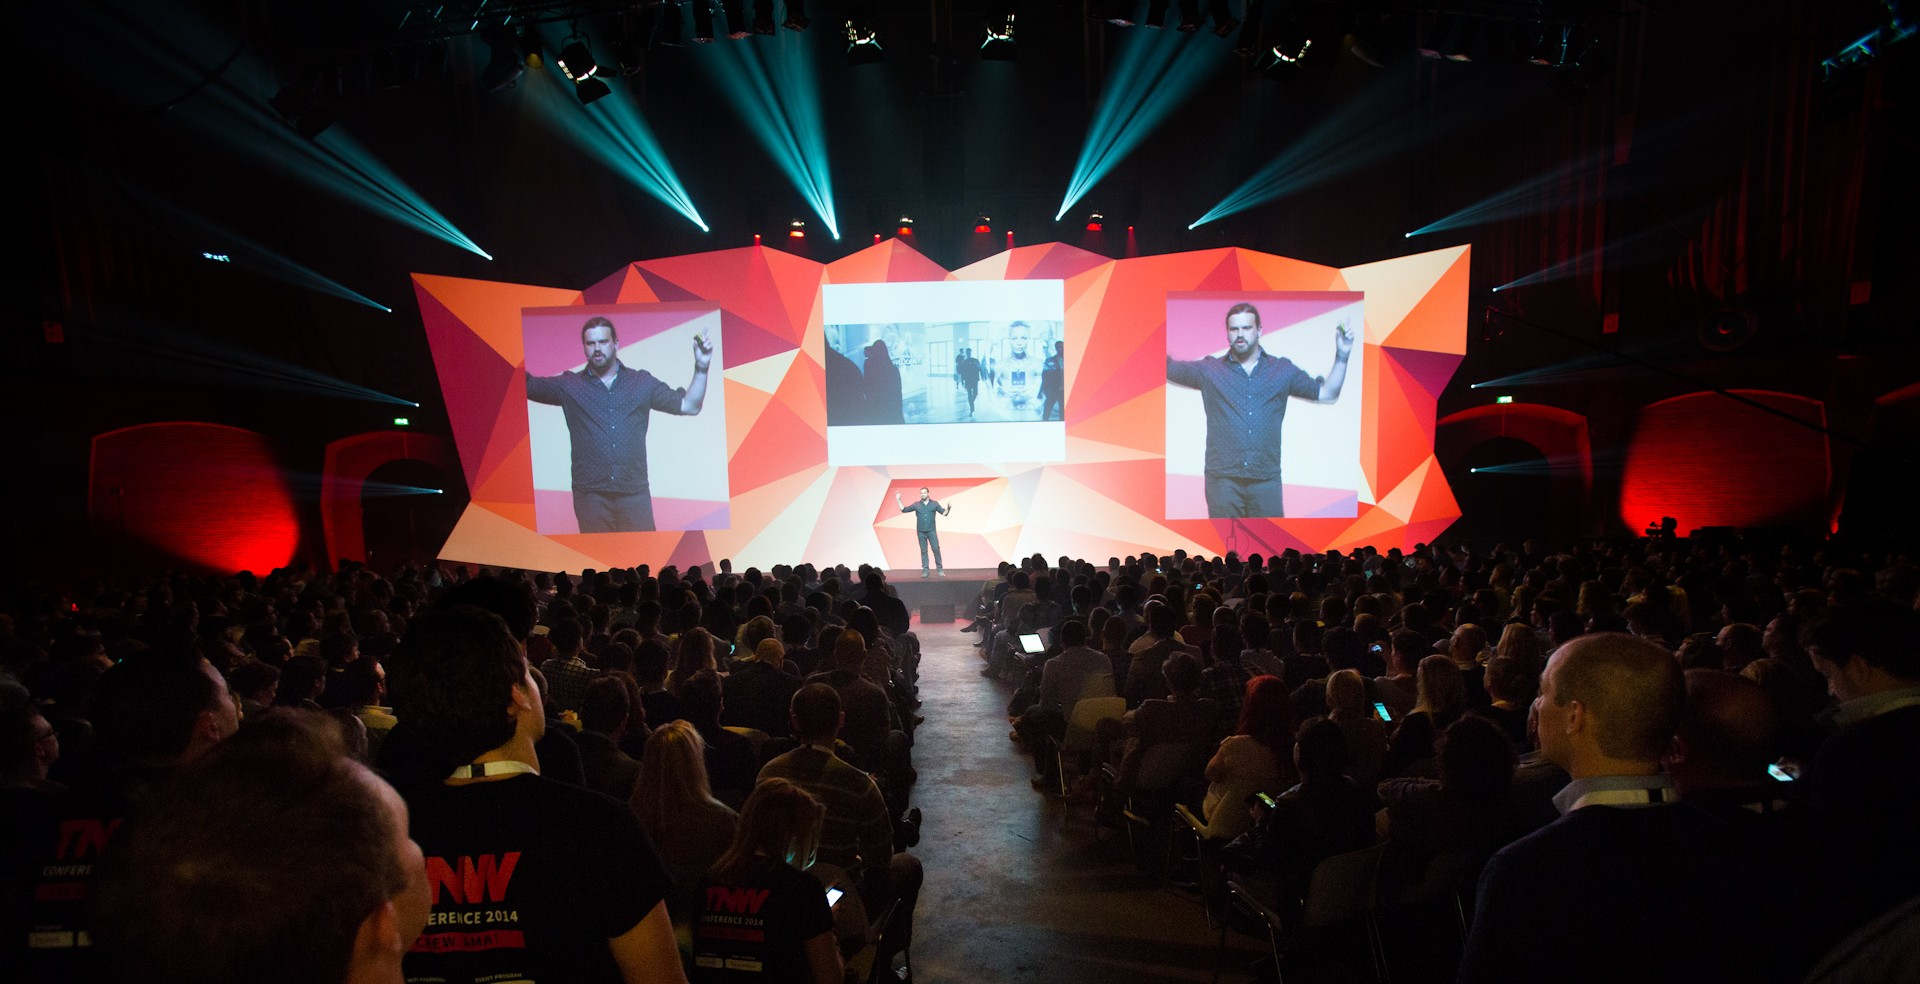 16 Startups That Will Be Pitching at #TNWUSA